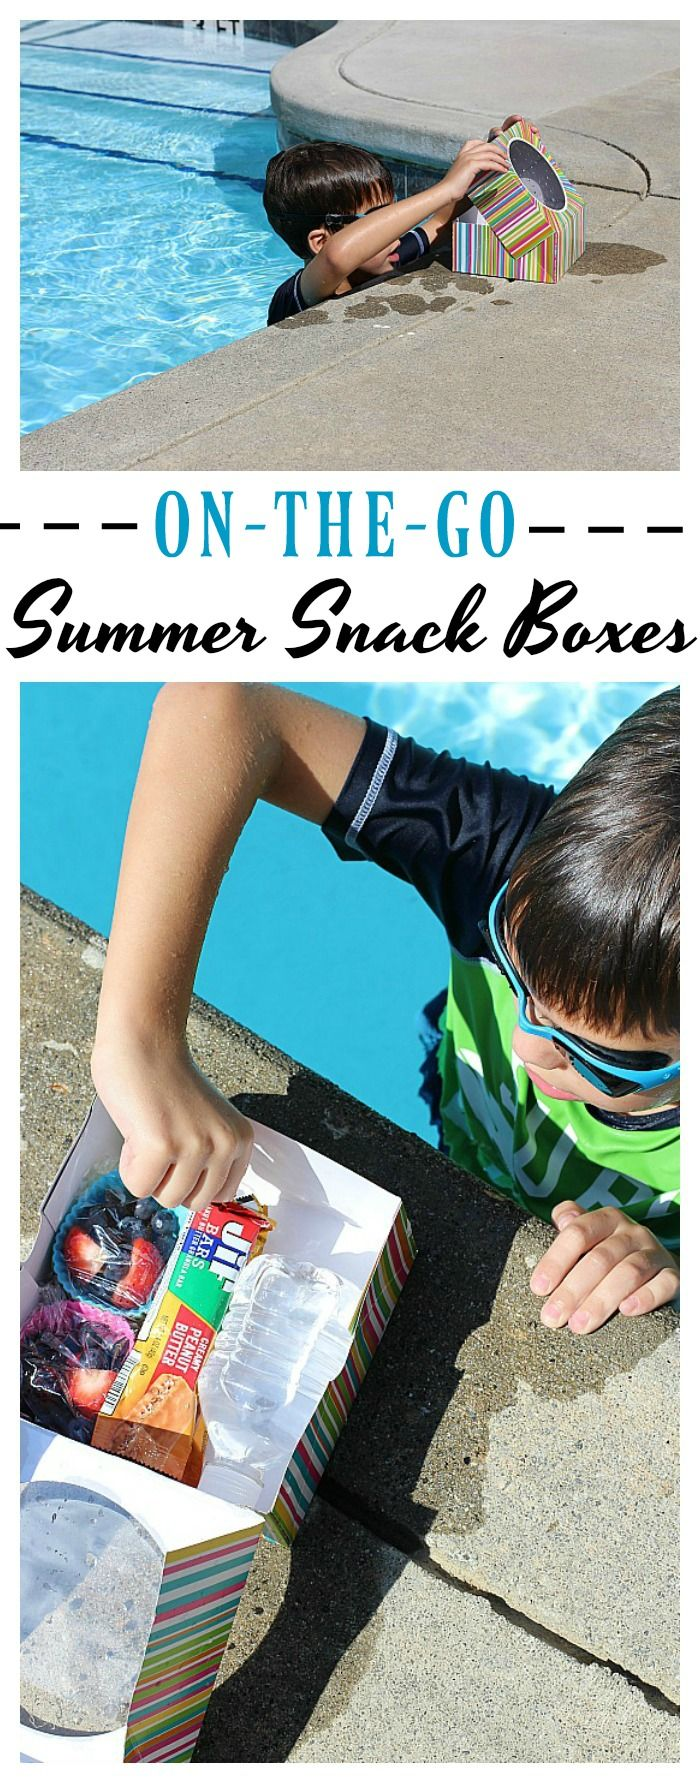 Make on-the-go summer snacking fun and delicious with these easy to make snack boxes filled with water, fresh fruit and @jifpeanutbutter bars! #JifSummerSnacking #ad